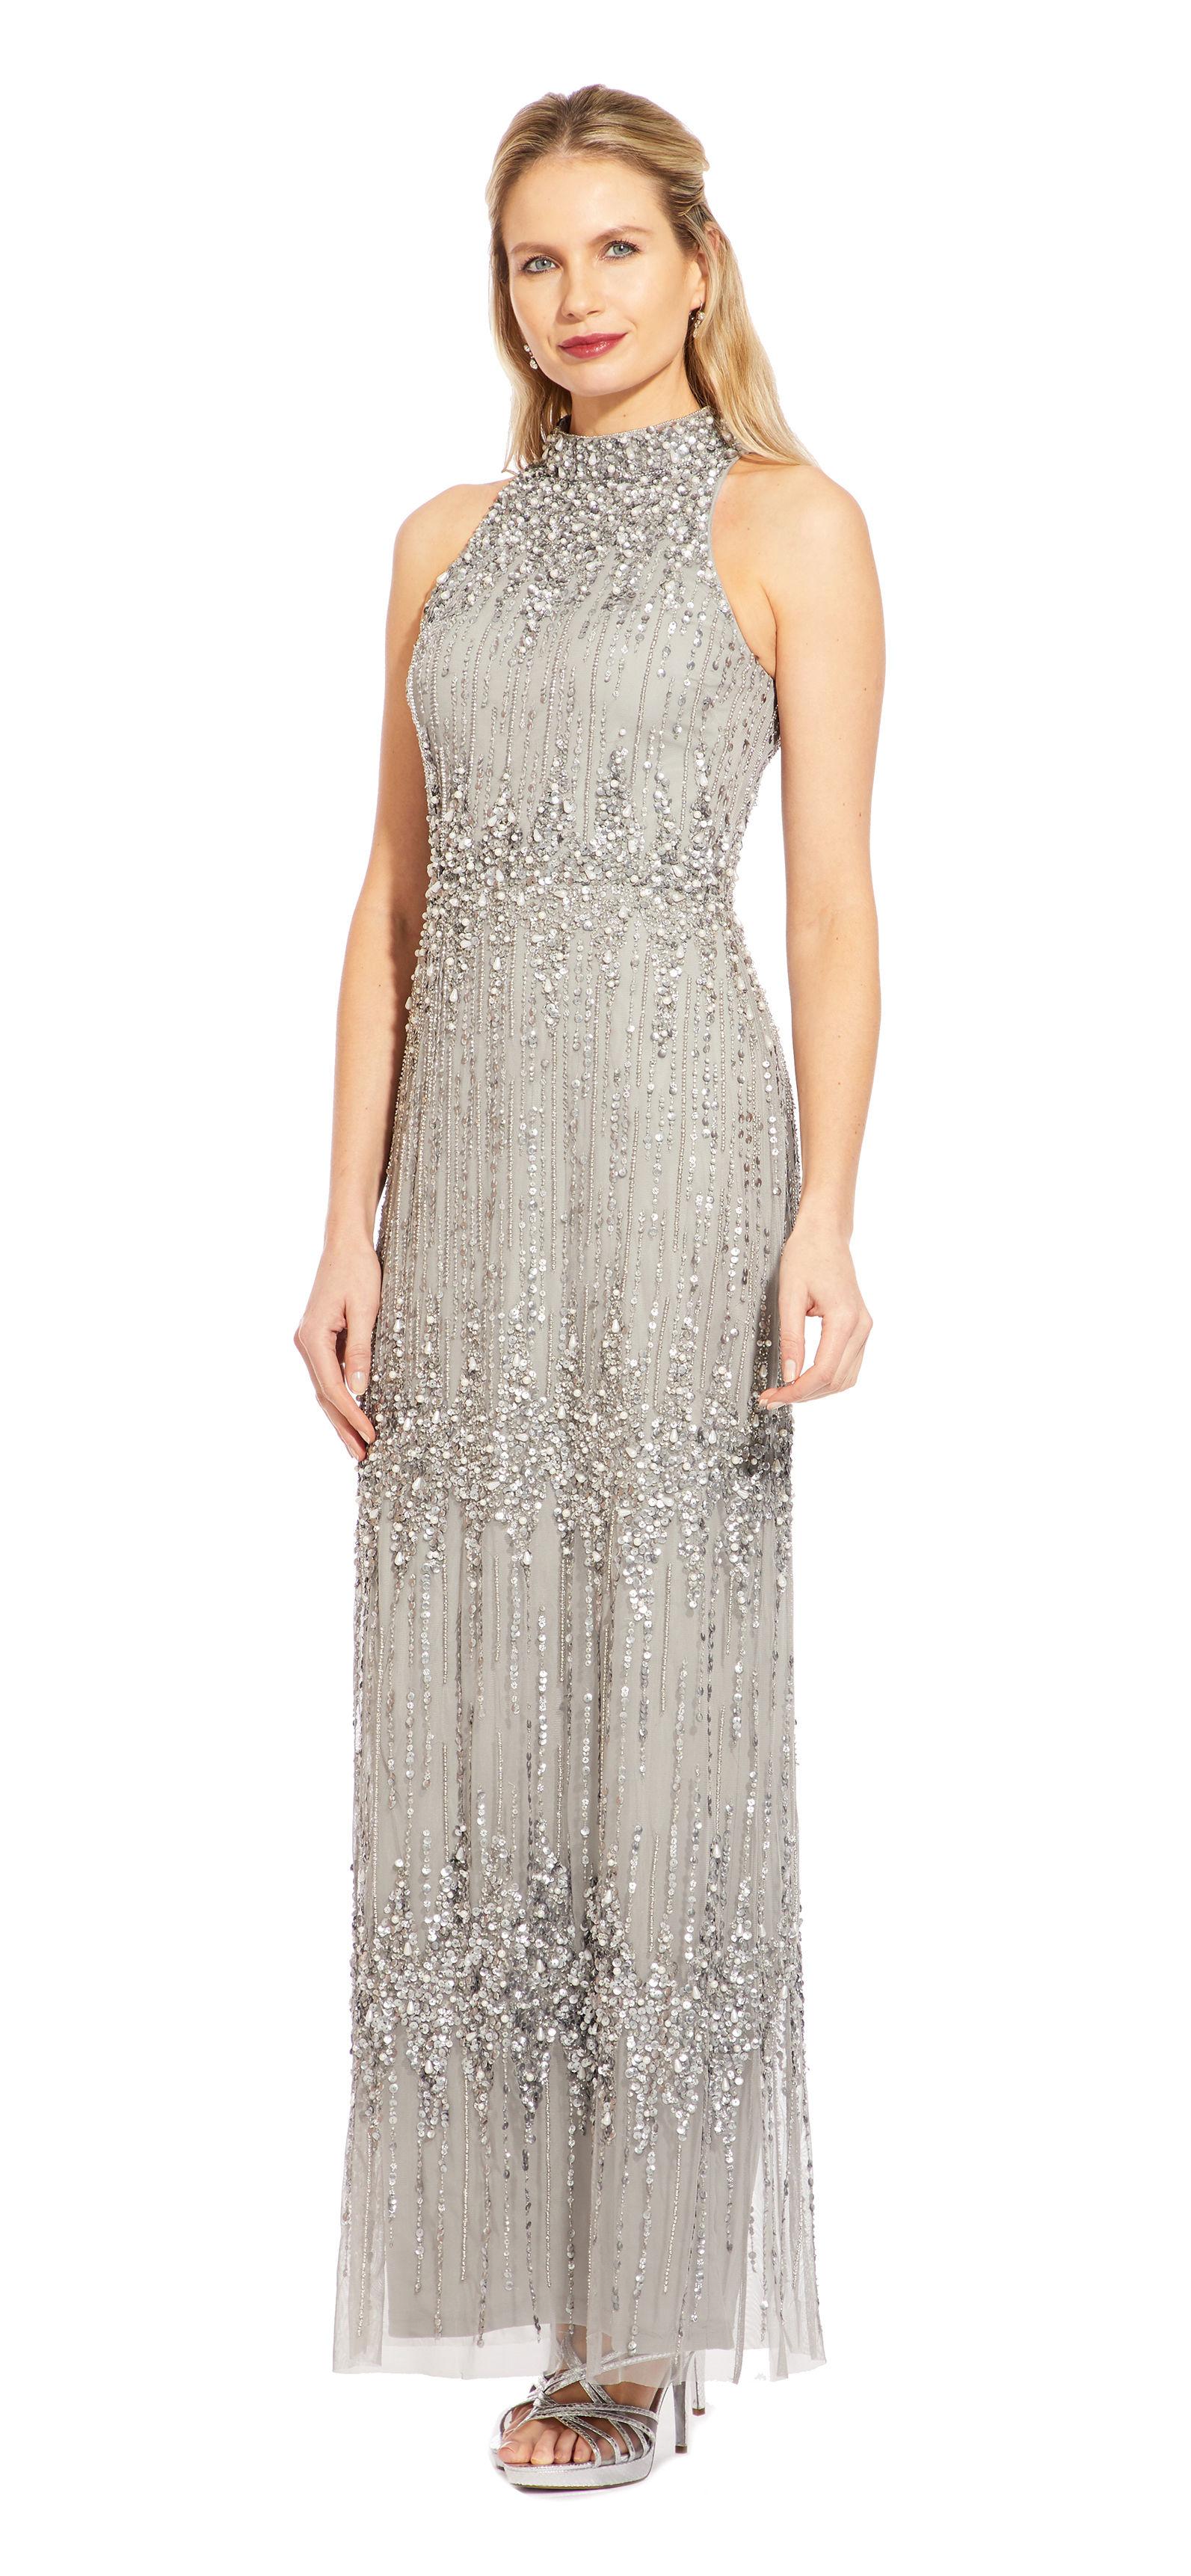 Wedding Guest Dresses: Cocktail Dresses, Evening Gowns & More